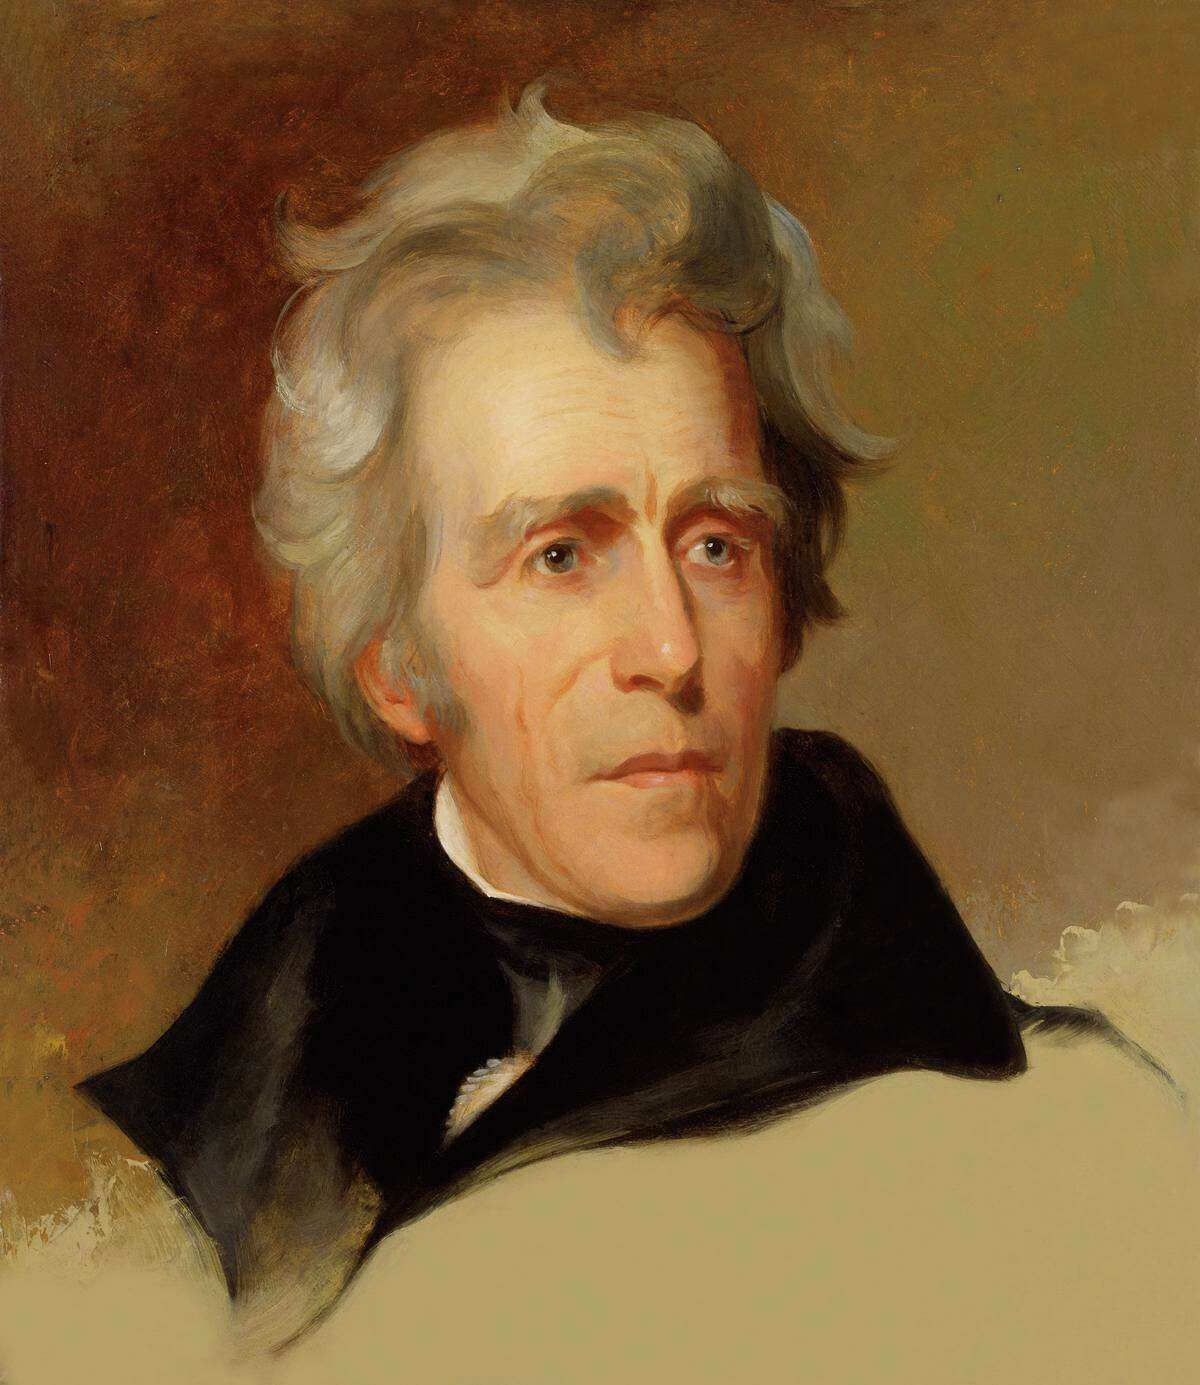 President Donald Trump has followed in the tradition of Andrew Jackson. Jacksonians are content to let the world sort itself out, except if they perceive a threat, in which case they react with great ferocity - like killing Qassem Soleimani.